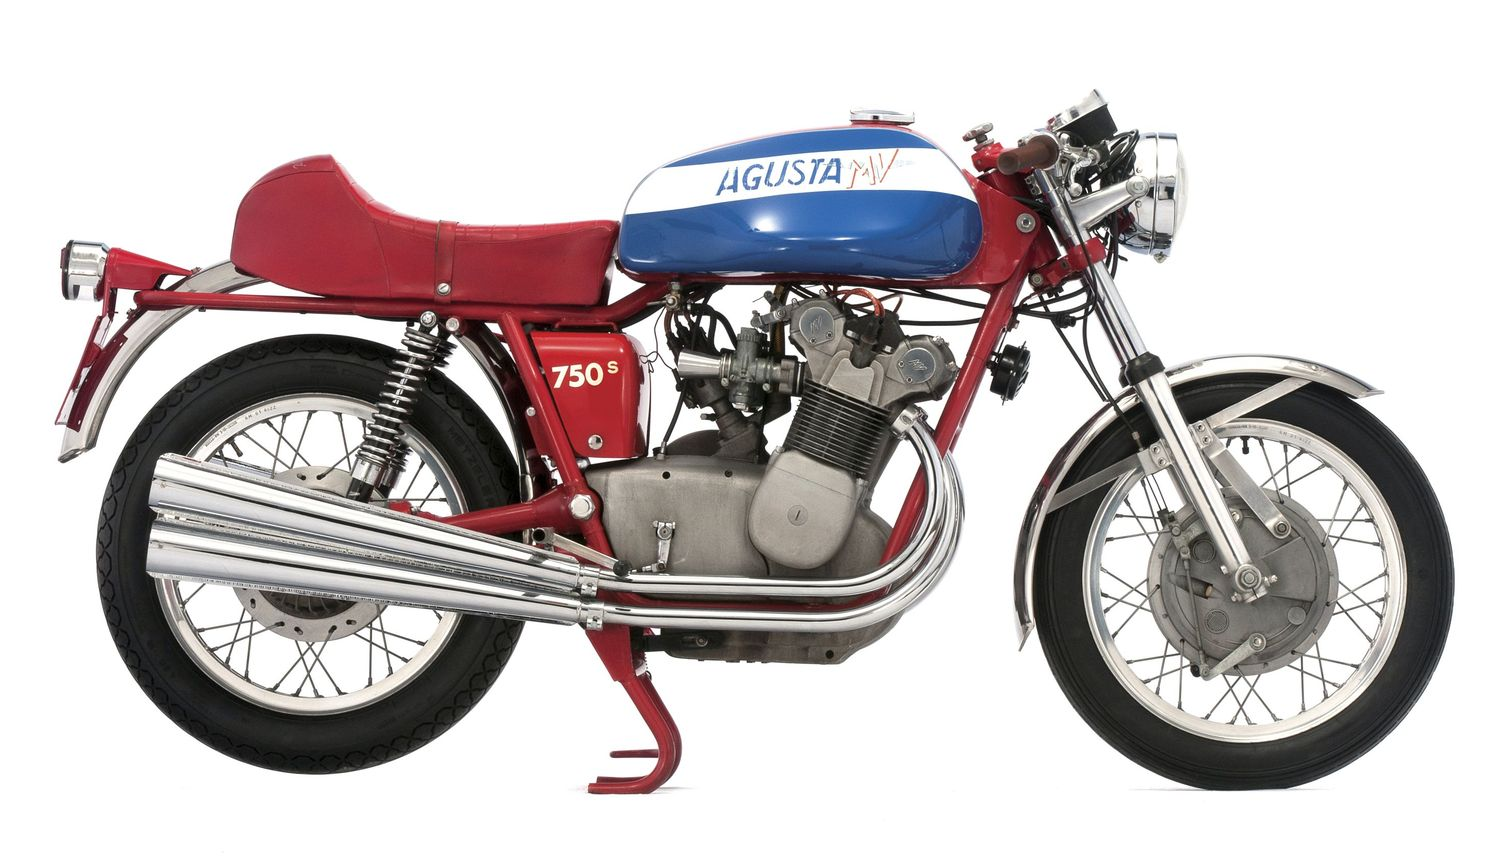 MV Agusta 750 S 1971 images #113172